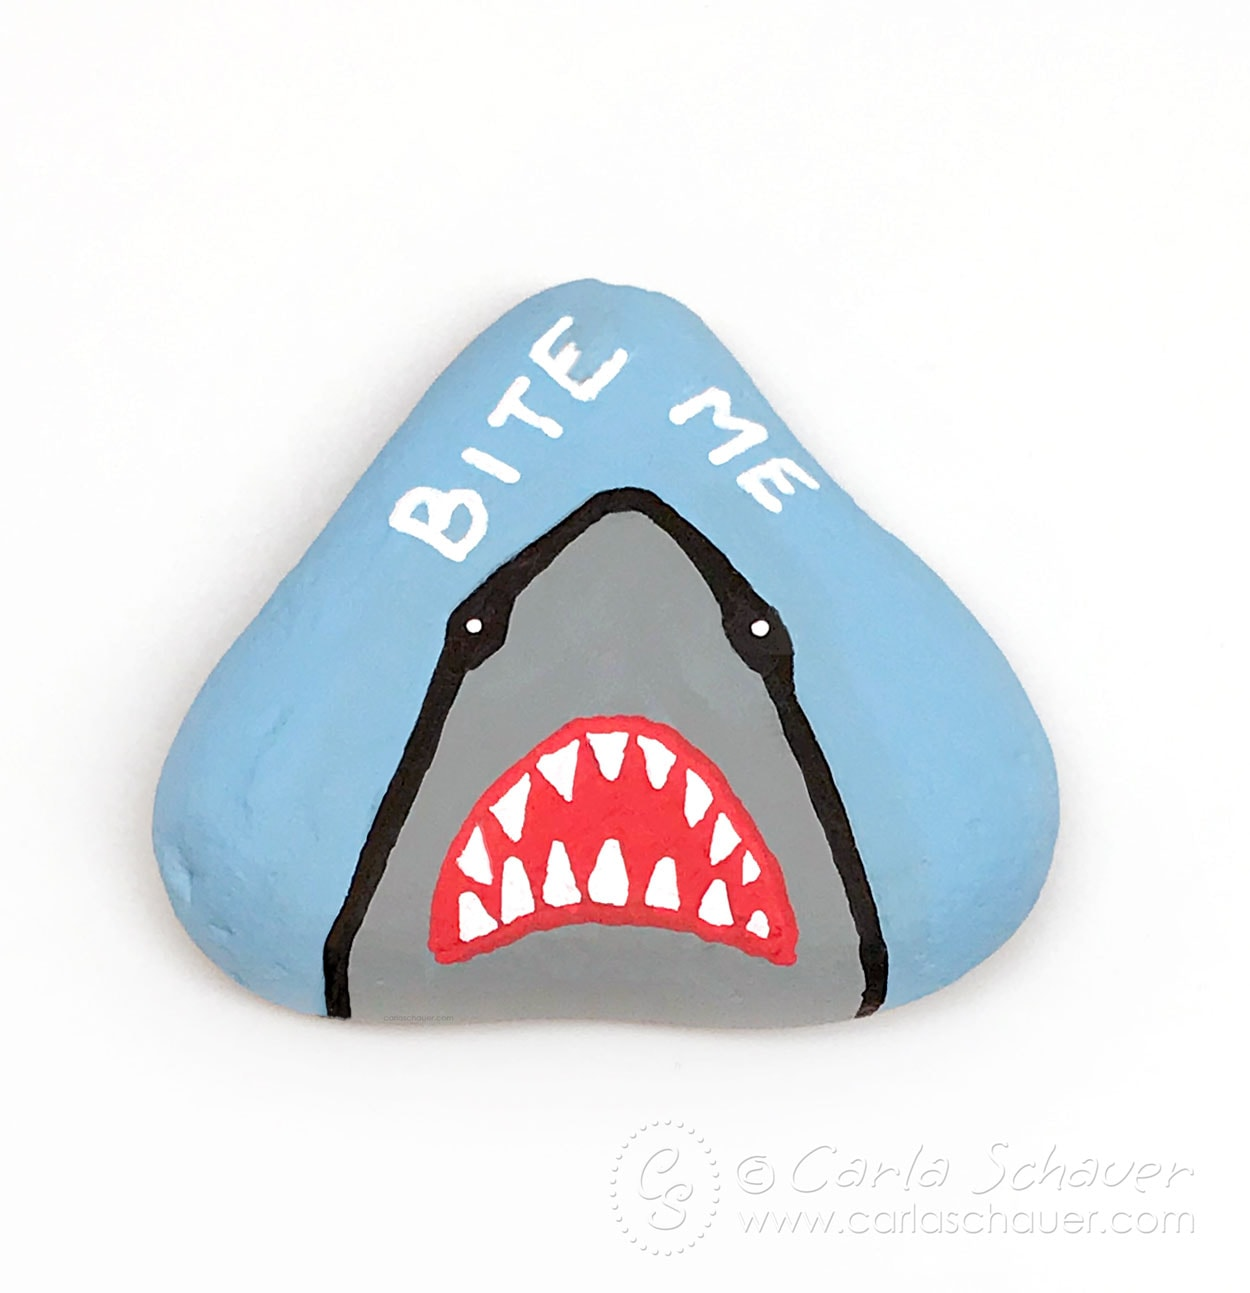 Snarky shark painted rock on white background